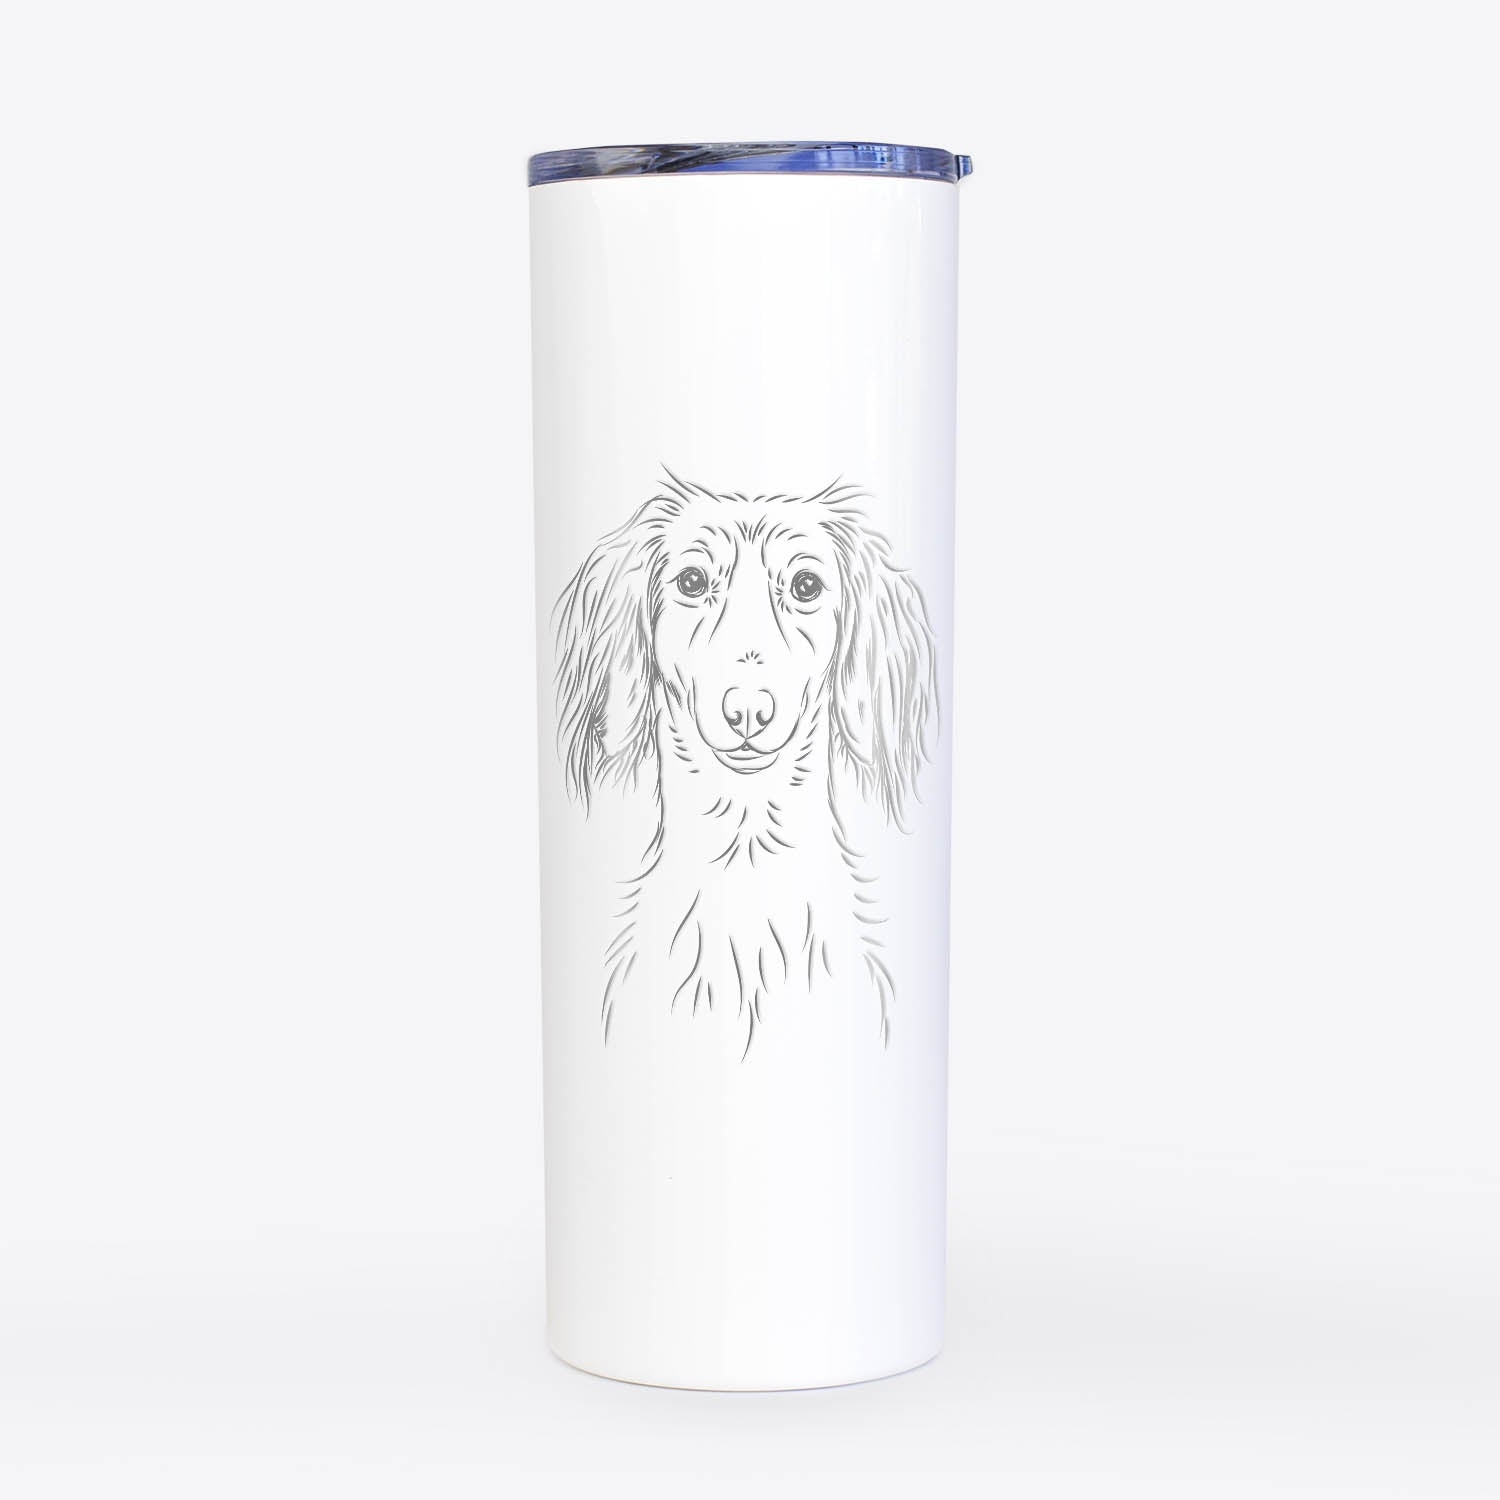 Roux the Long Haired Dachshund - 20oz Skinny Tumbler